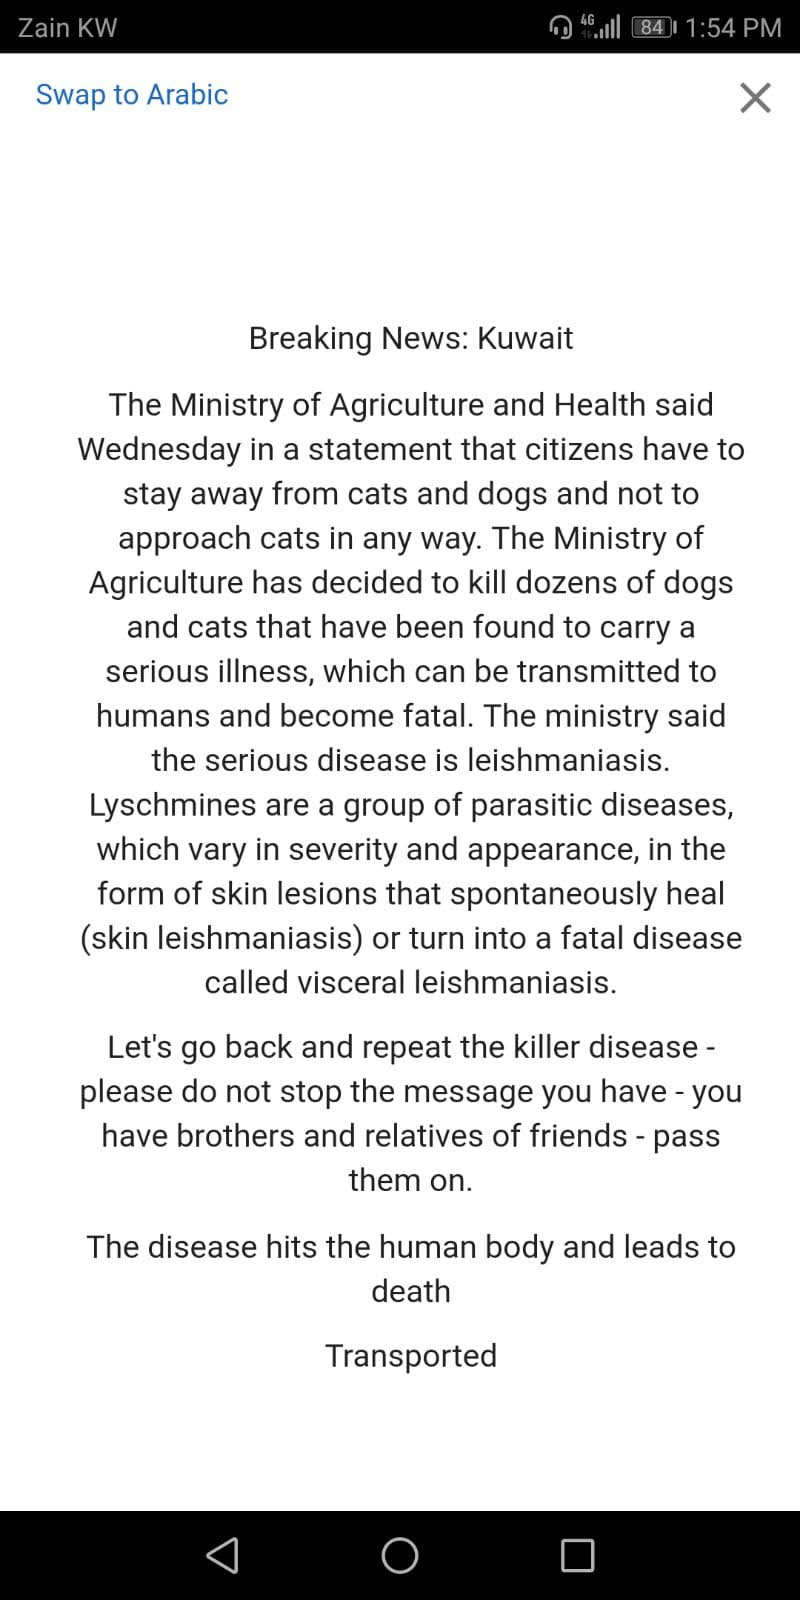 Leishmaniasis in Kuwait - Its FAKE NEWS - ARAB TIMES - KUWAIT NEWS